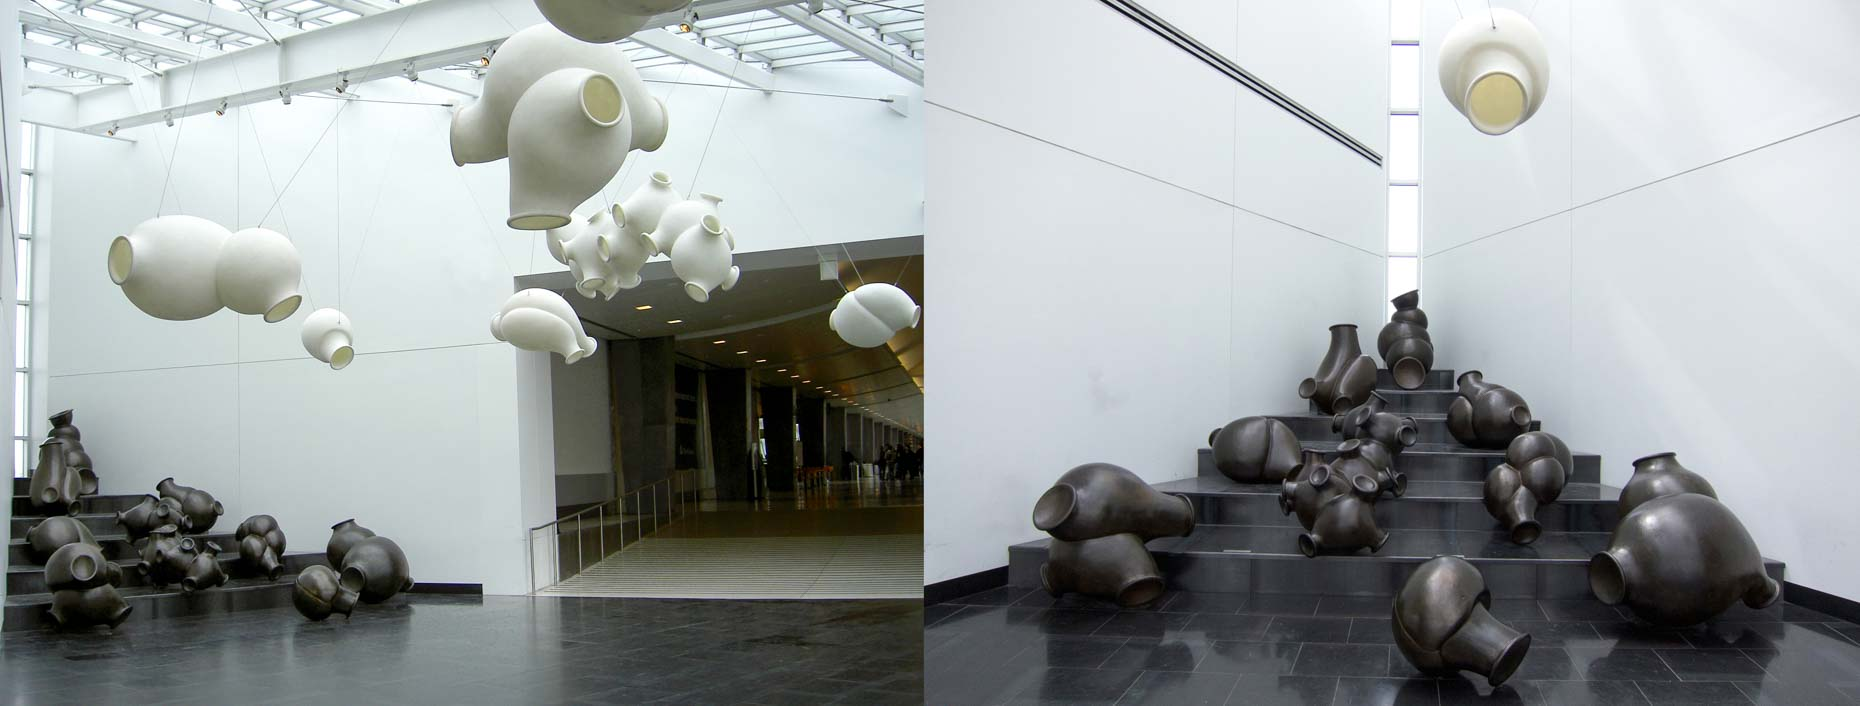 cloudsandclunkers, 